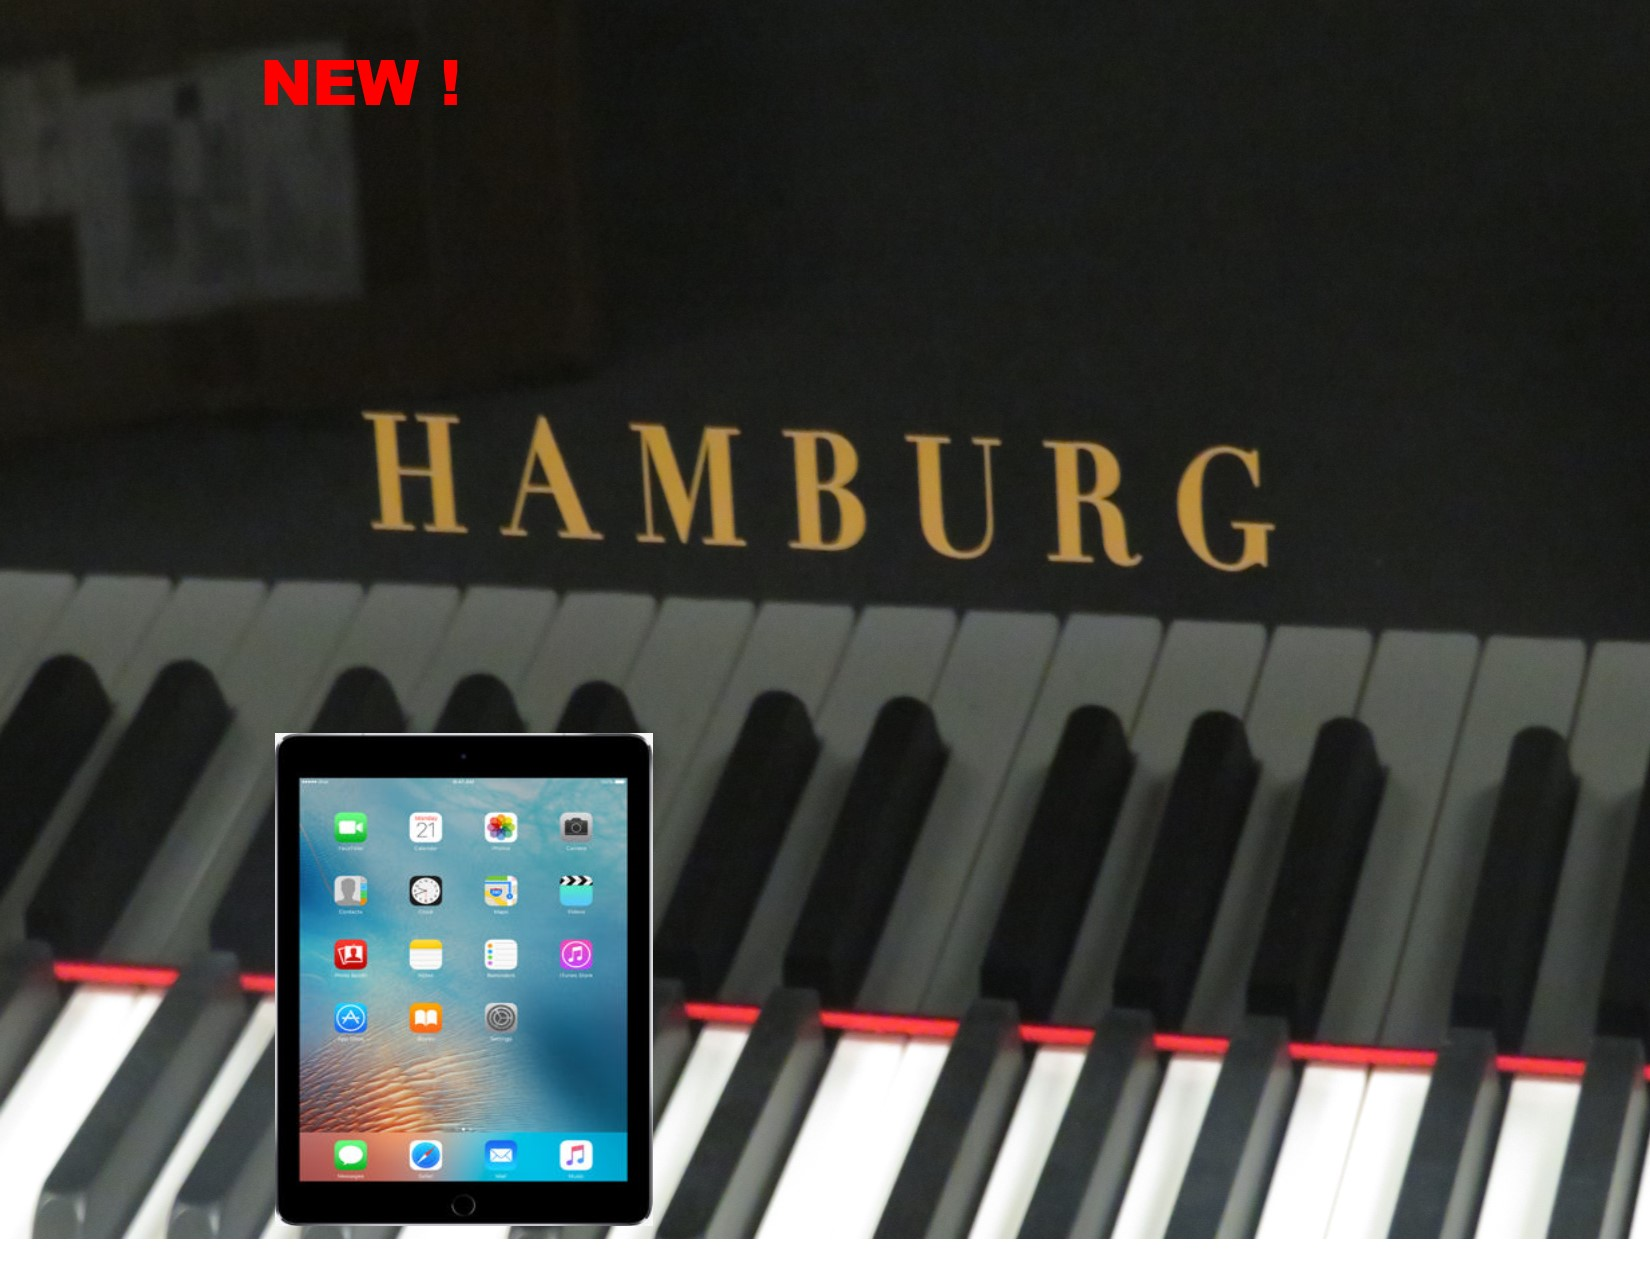 """12380 – <br><font color=black><b>NEW HAMBURG</b></font> 5'0″ Premium Grade Piano with State-of-the-Art QRS player system<br><font color=blue><b>Click Picture for """"Live Video""""</b></font>"""